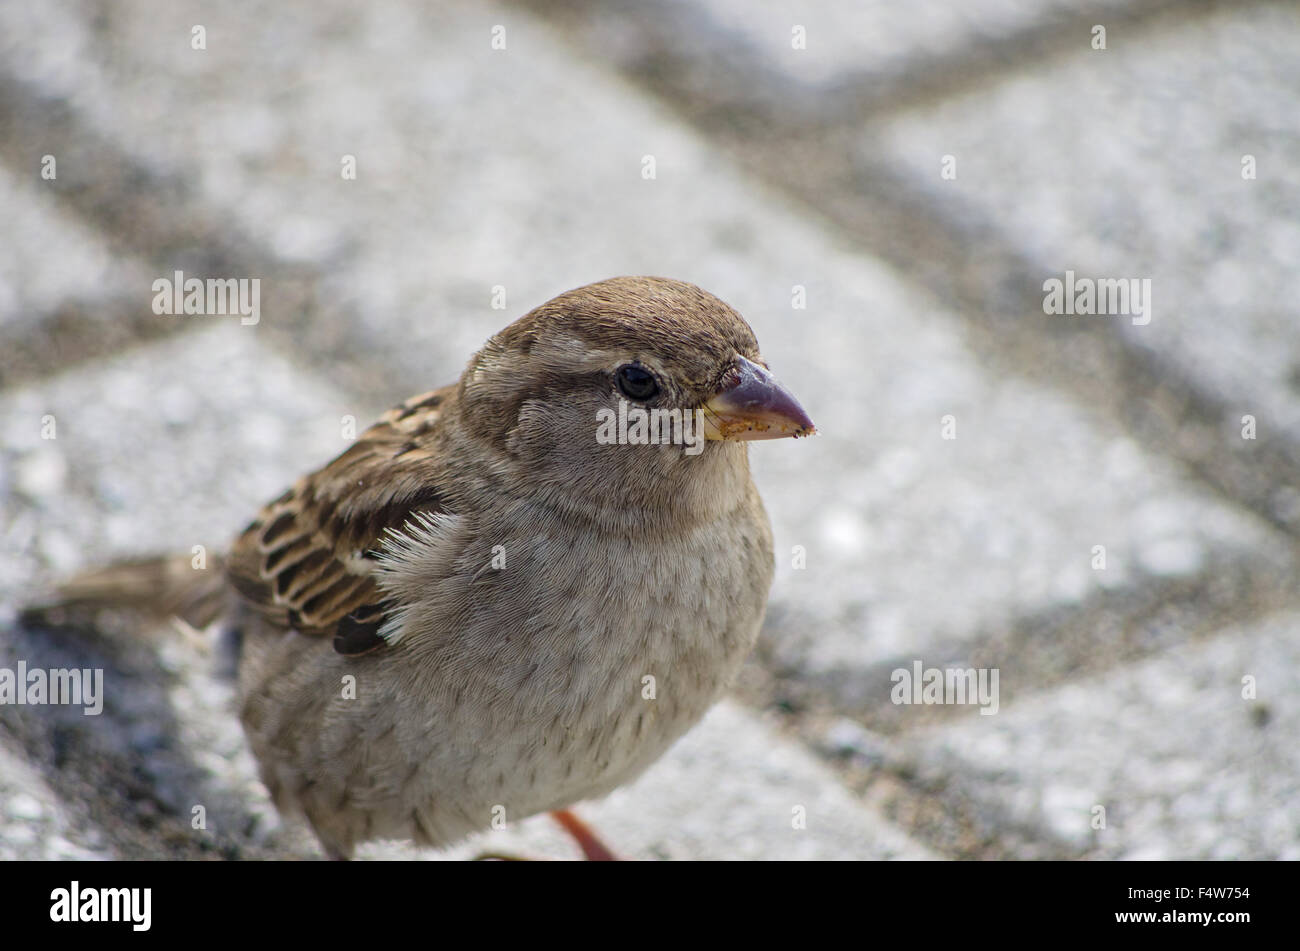 Sparrow searching something to eat near domestic house Stock Photo